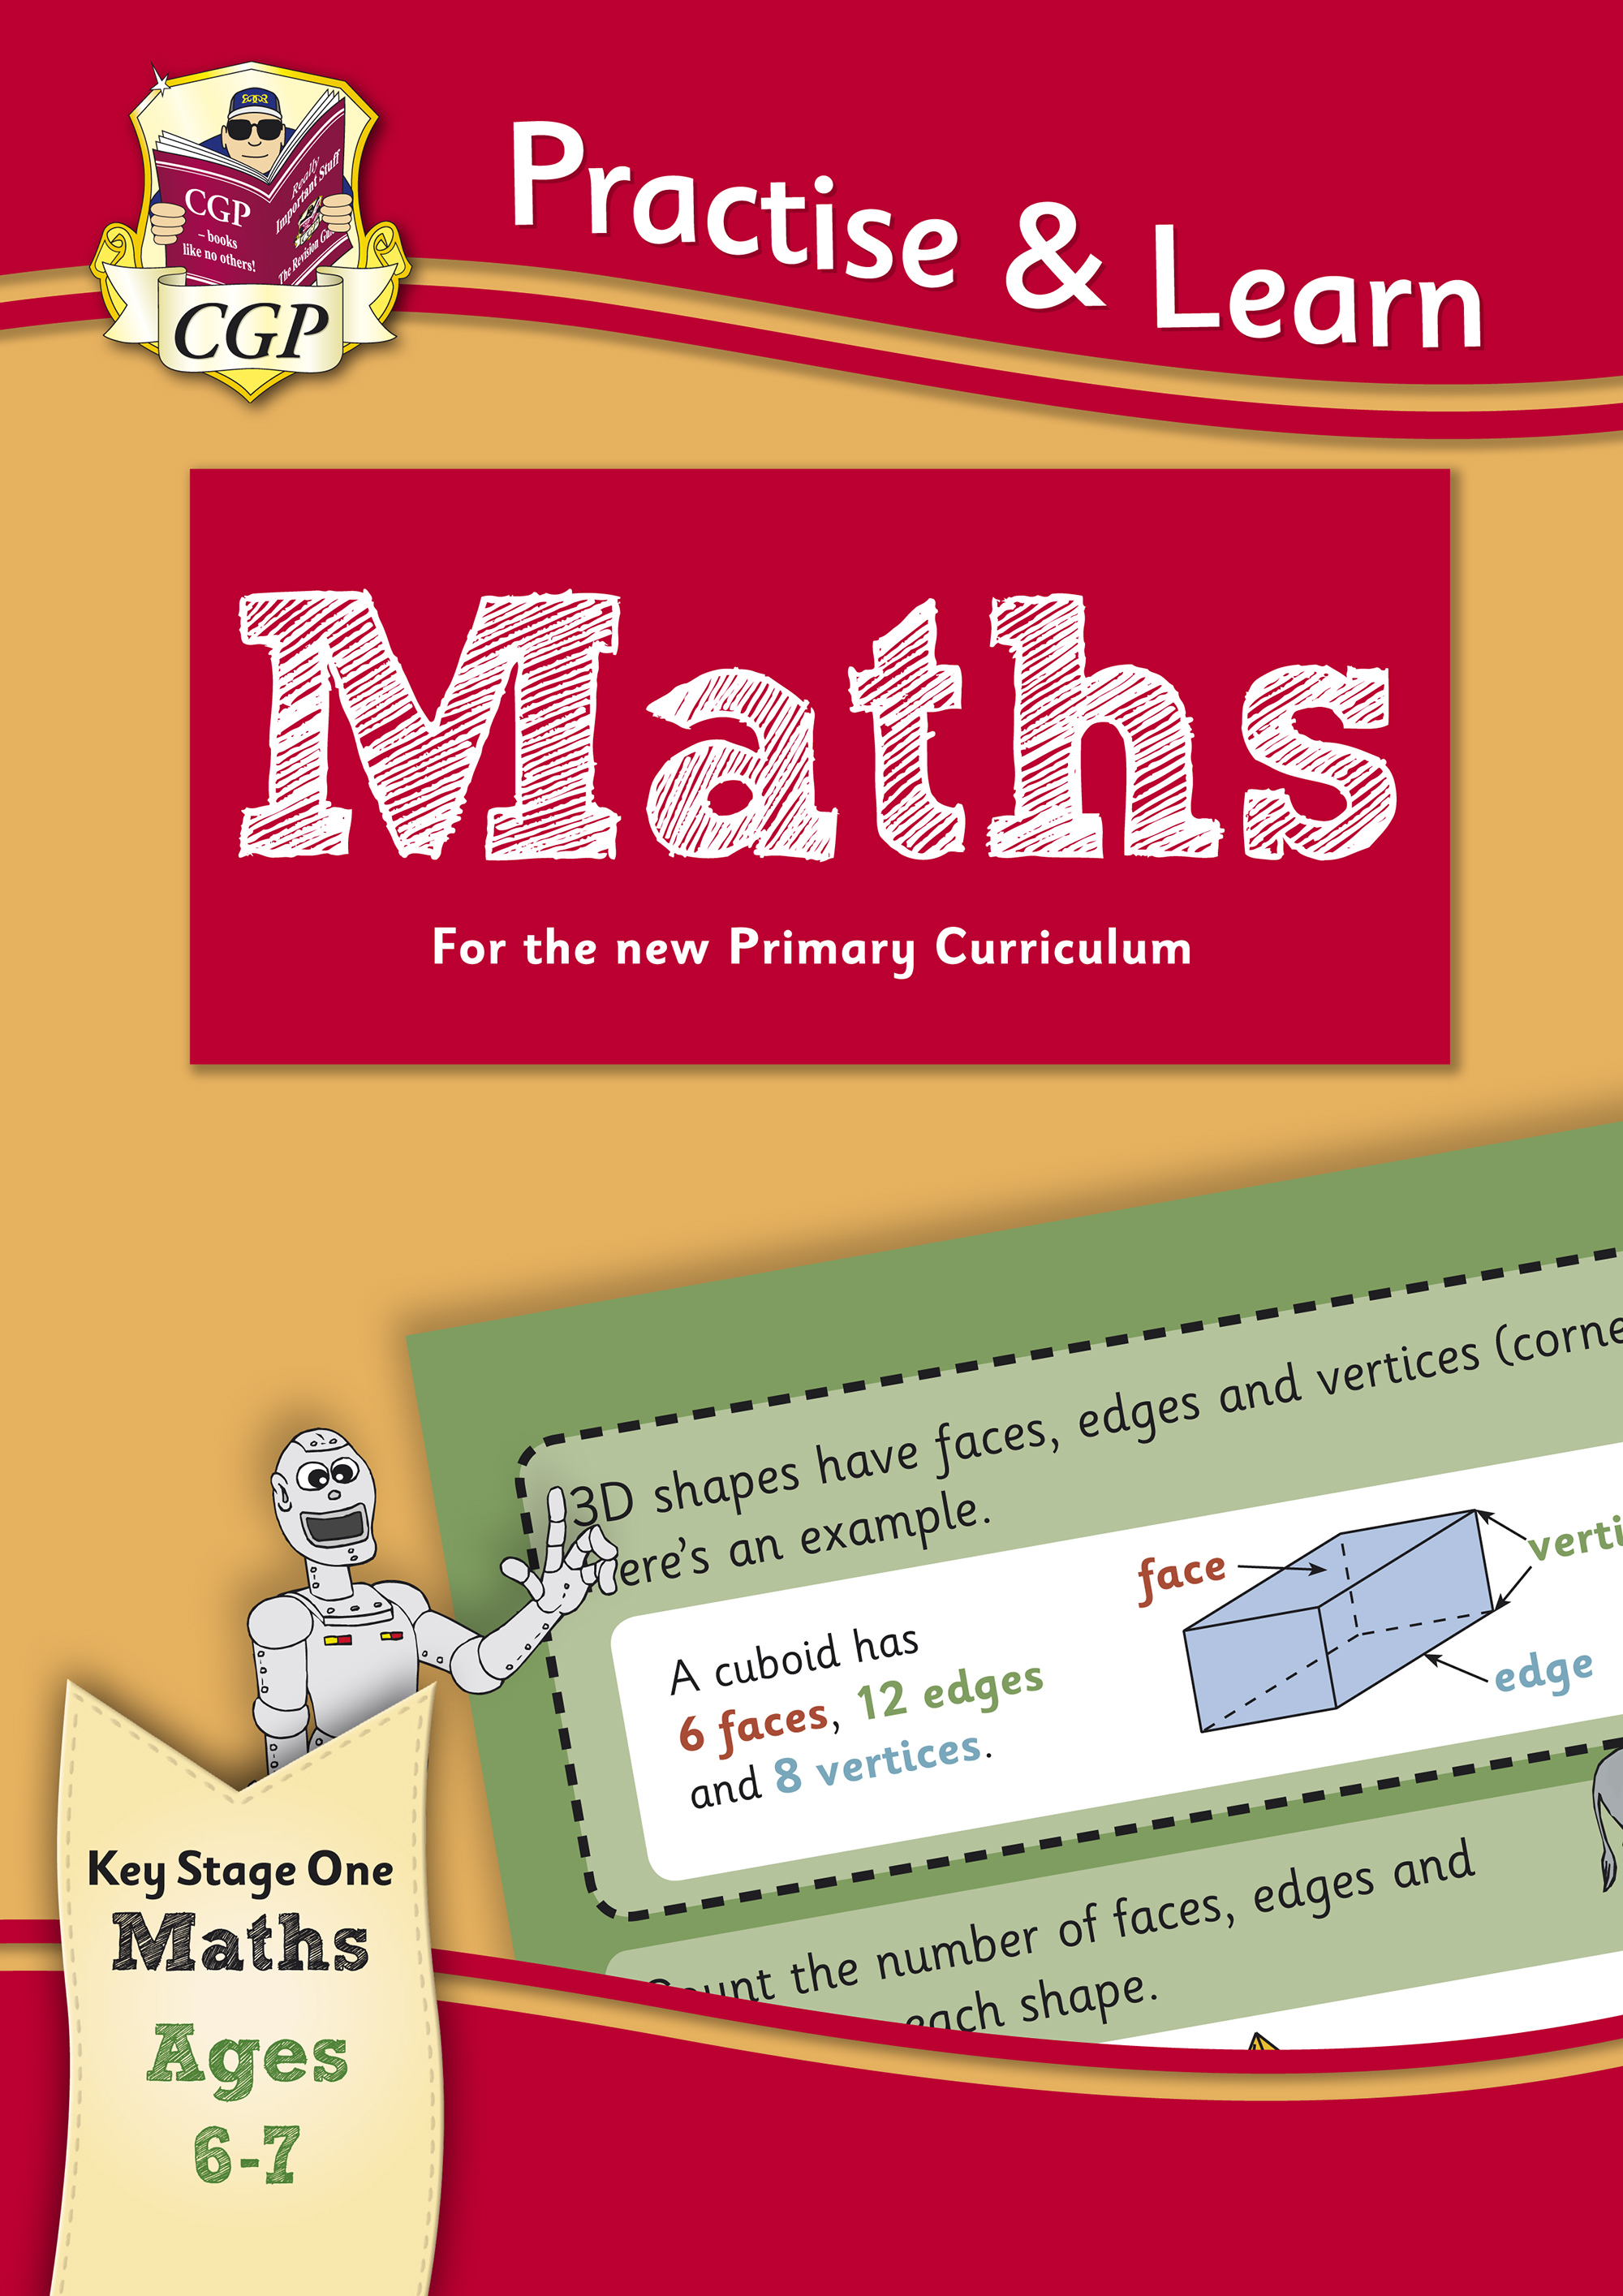 MP2Q12 - New Curriculum Practise & Learn: Maths for Ages 6-7